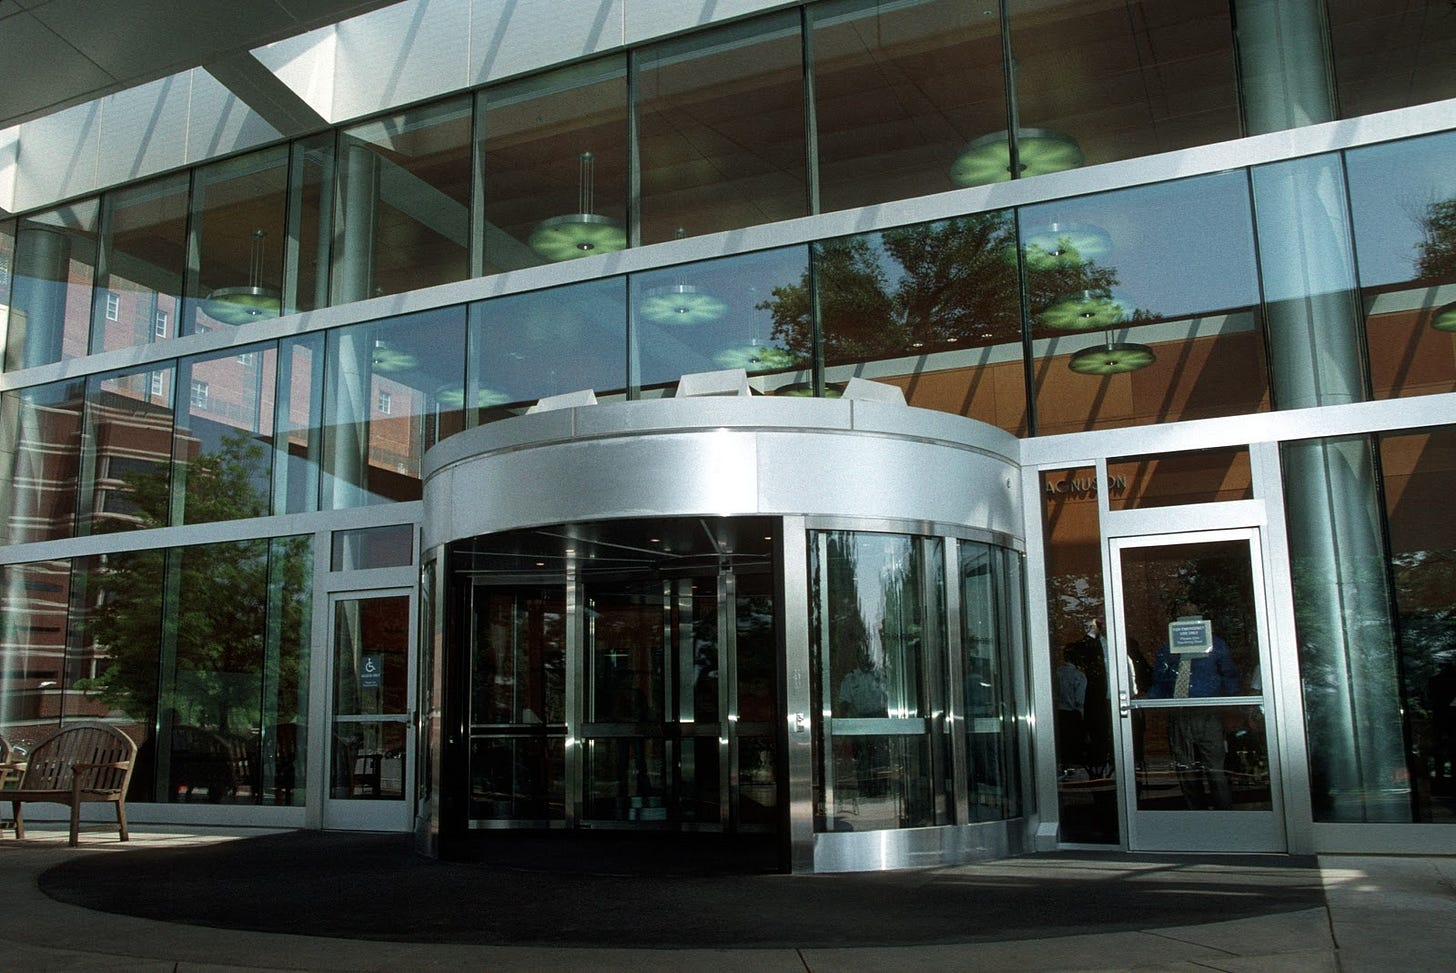 Wide shot of a revolving door at an office building. Image via Unsplash.